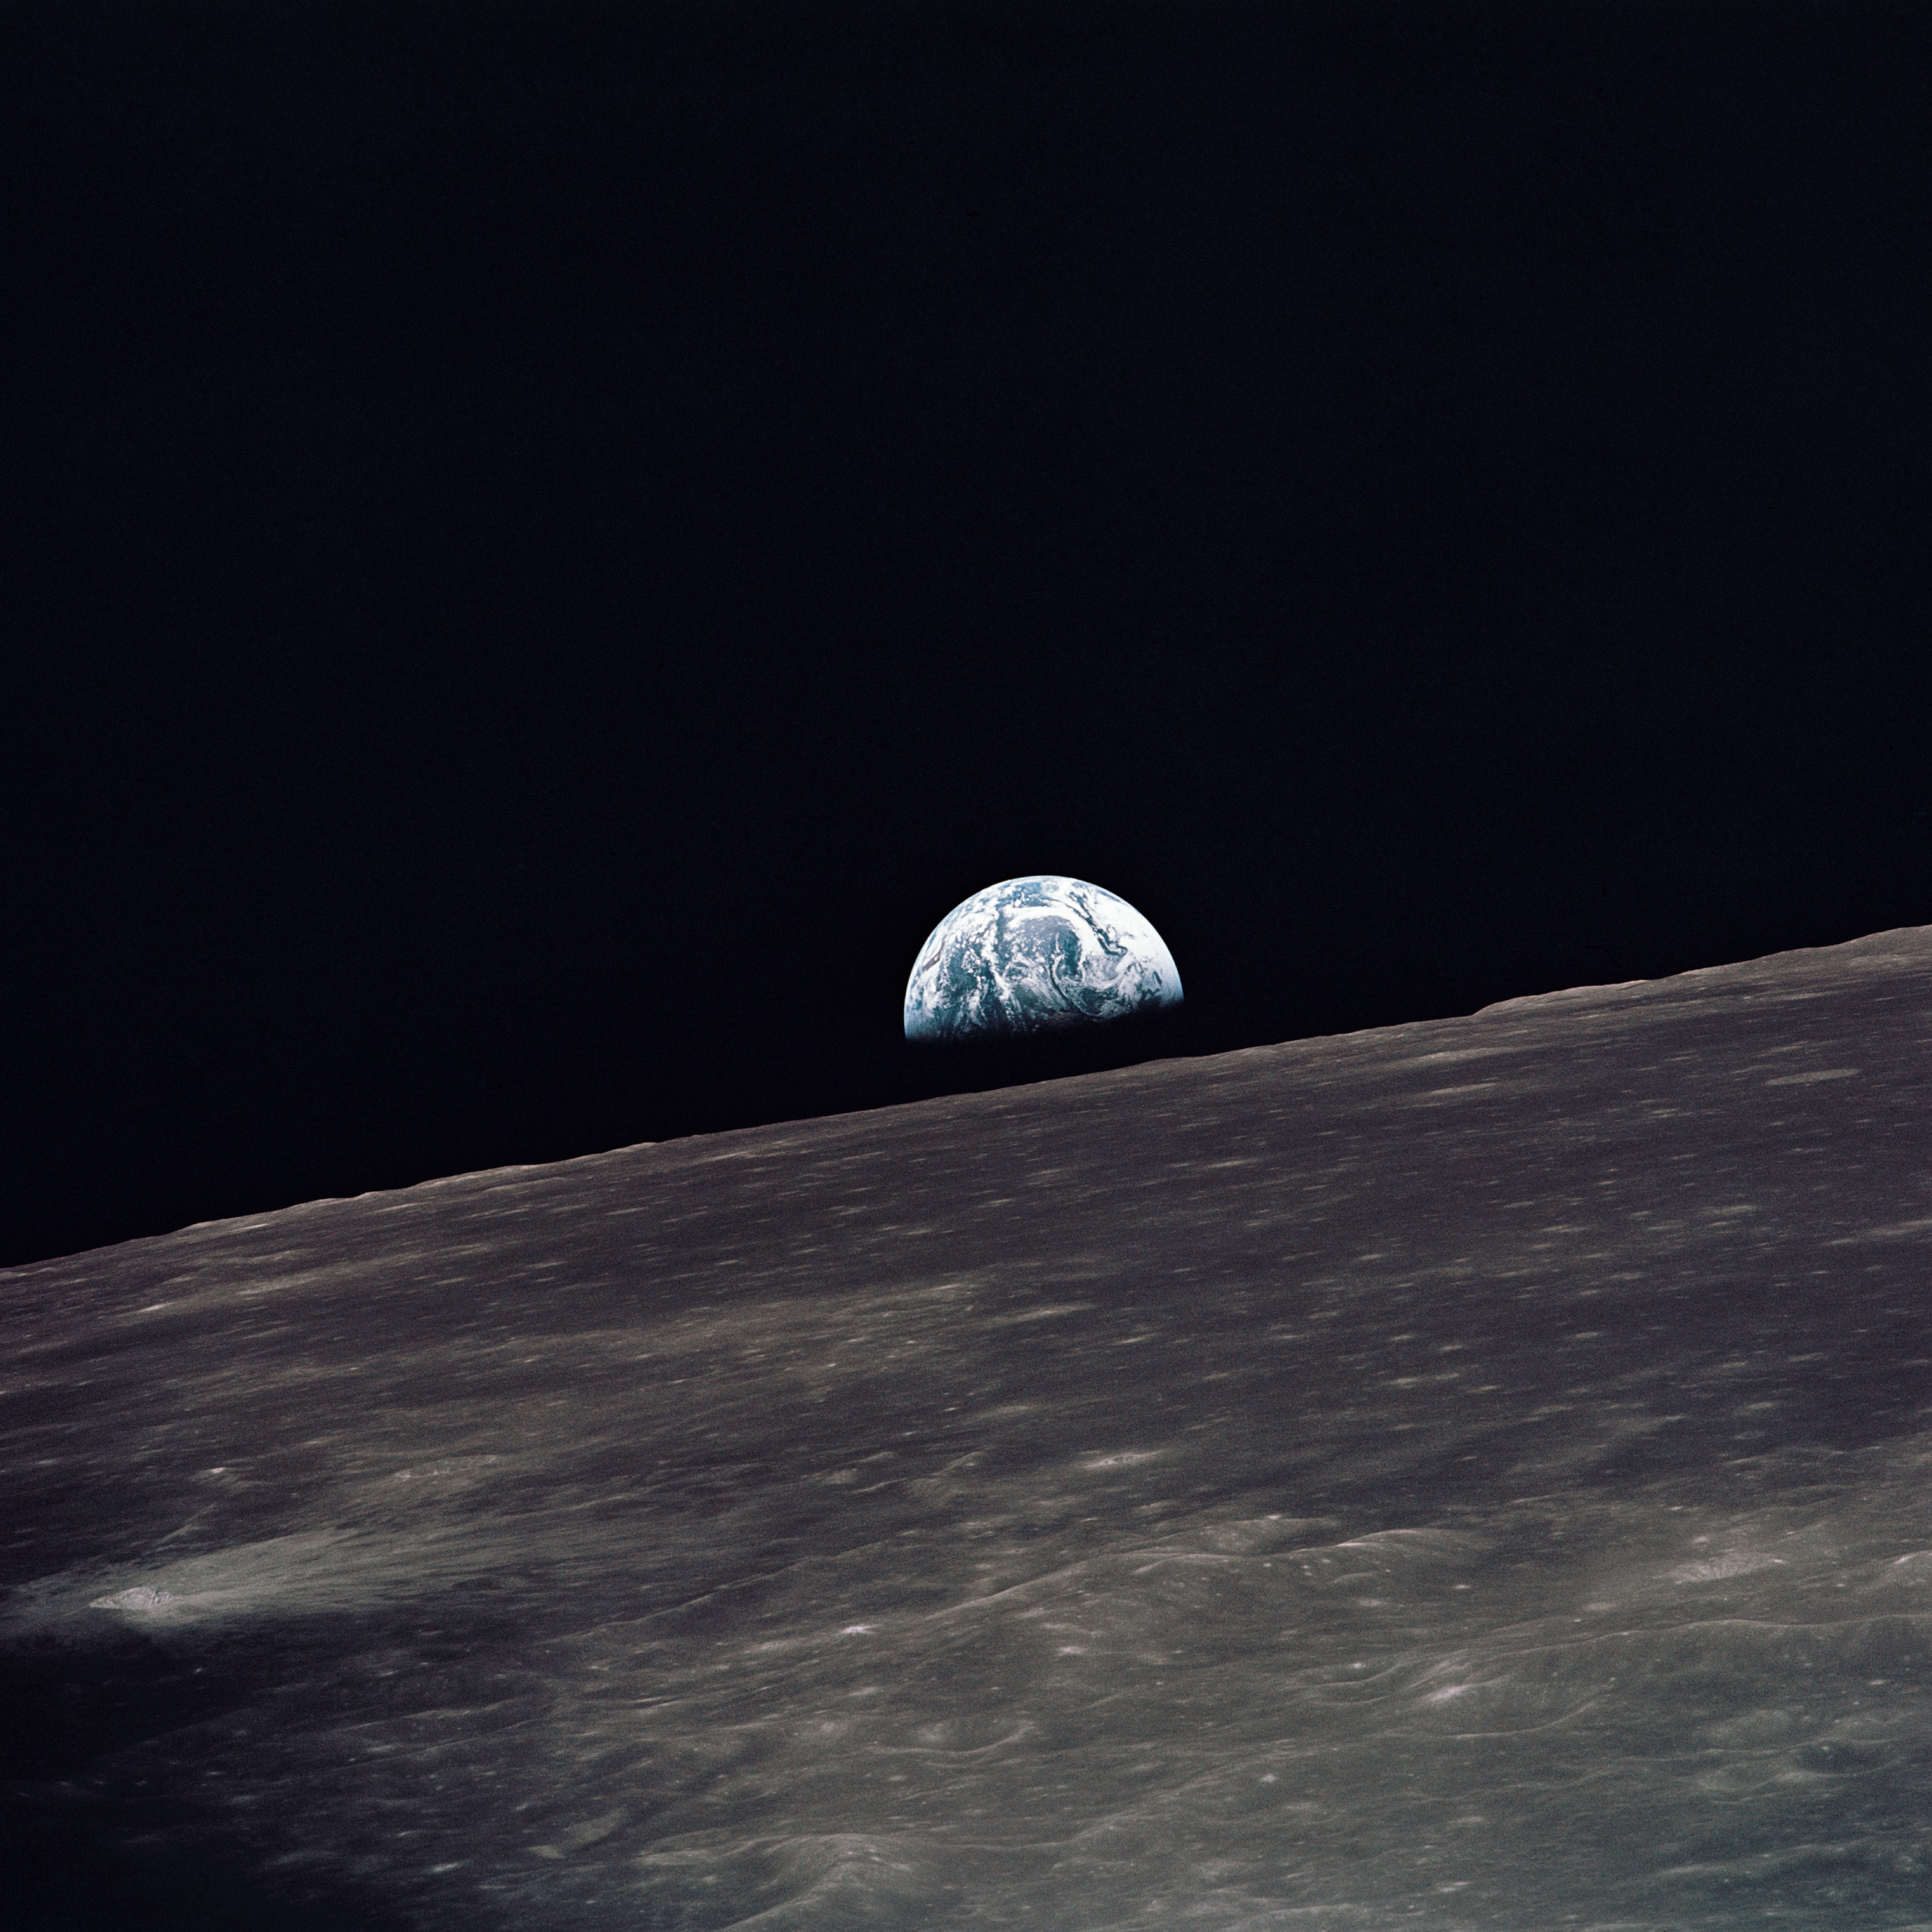 earthrise from moon apollo - photo #27